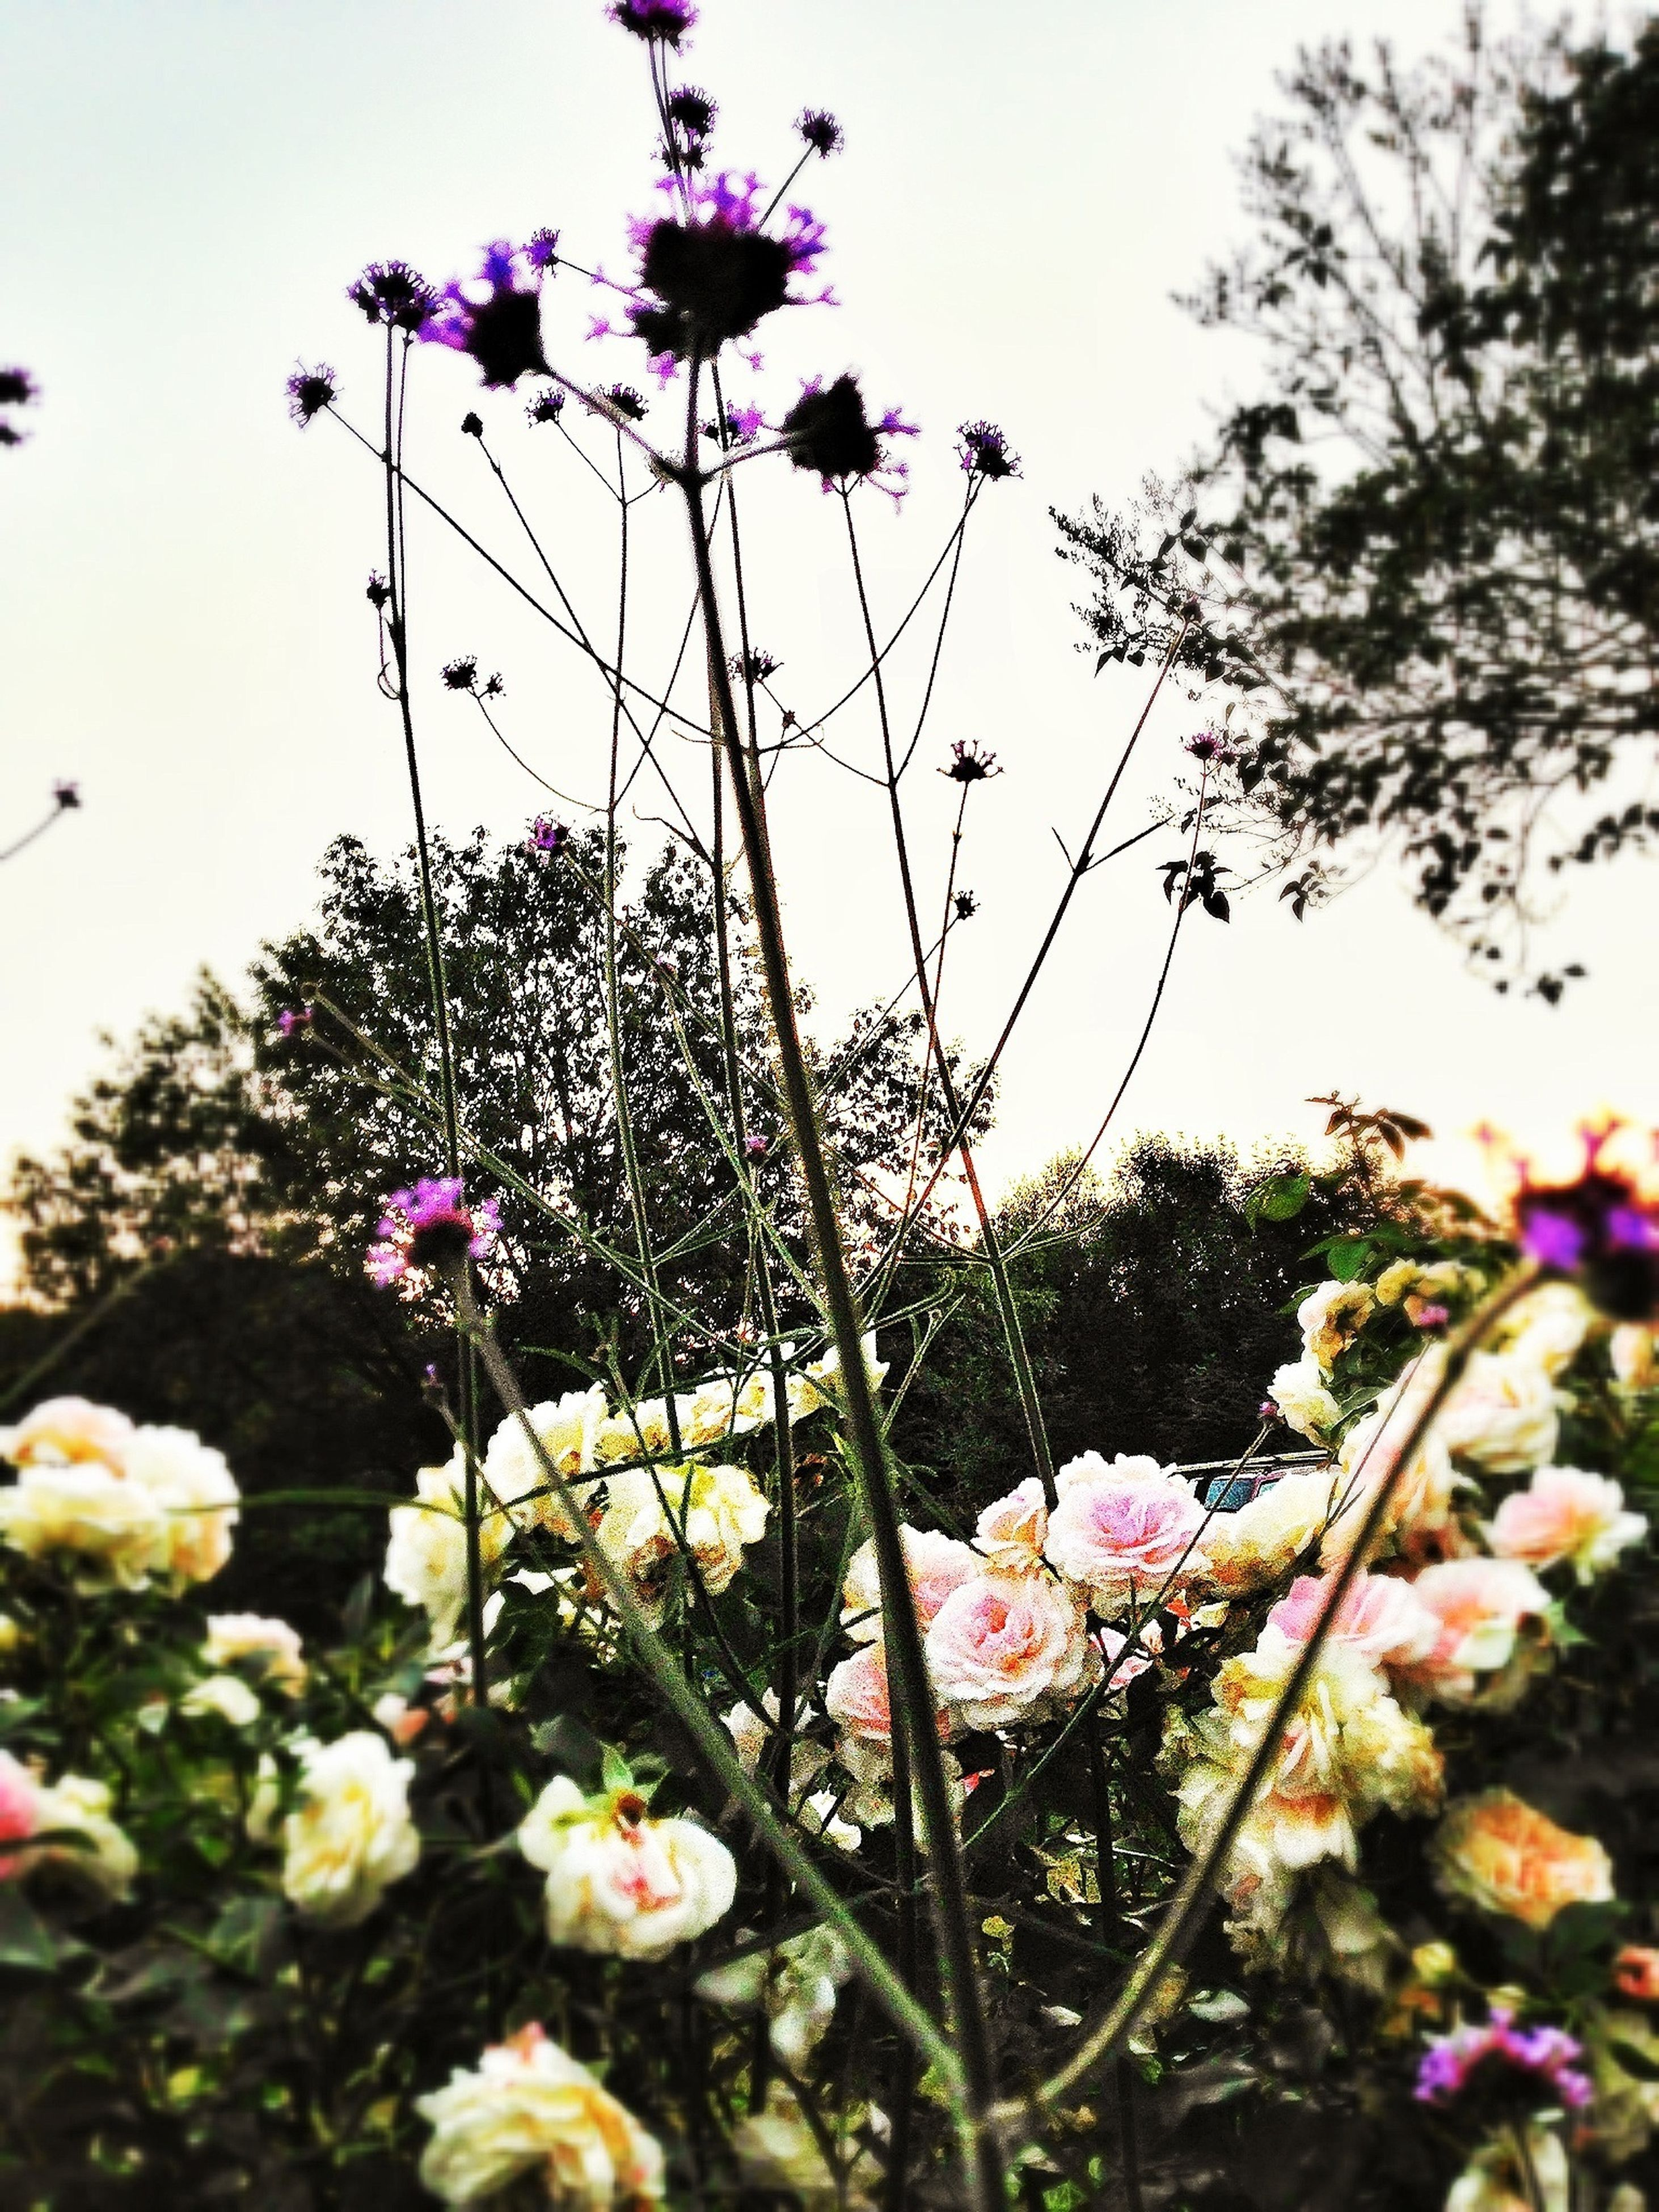 flower, freshness, fragility, growth, petal, beauty in nature, pink color, stem, blooming, nature, in bloom, plant, low angle view, flower head, blossom, sky, springtime, clear sky, botany, tree